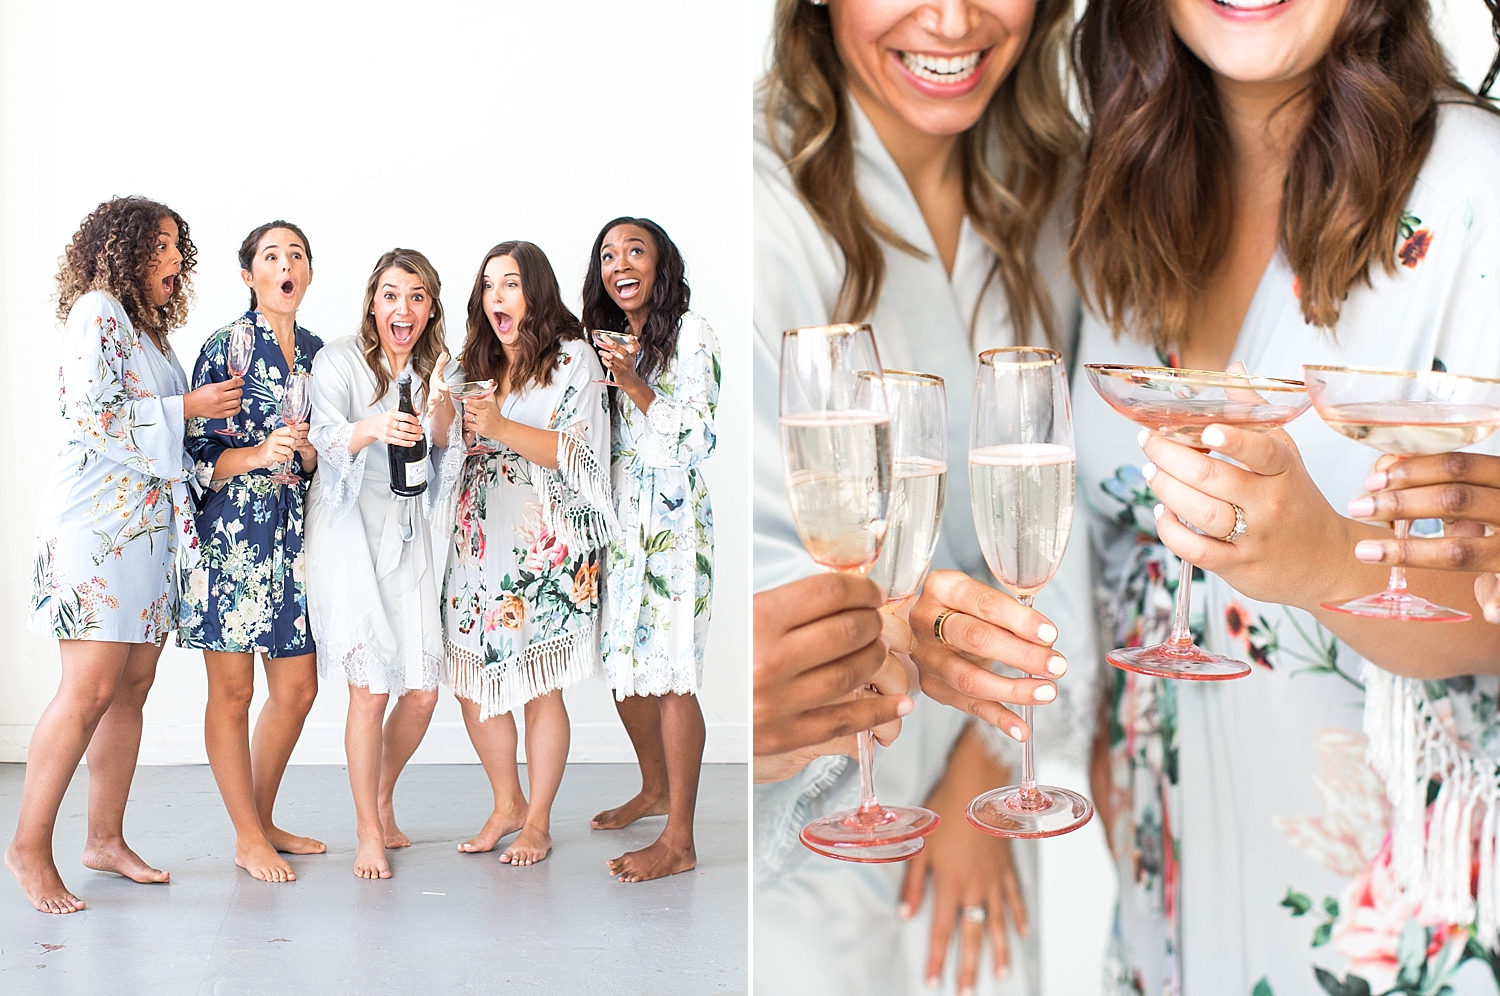 BHLDN Bridesmaids Dresses Campaign Philadelphia New Jersey Wedding Fashion Photography by Kelee Bovelle_0002.jpg